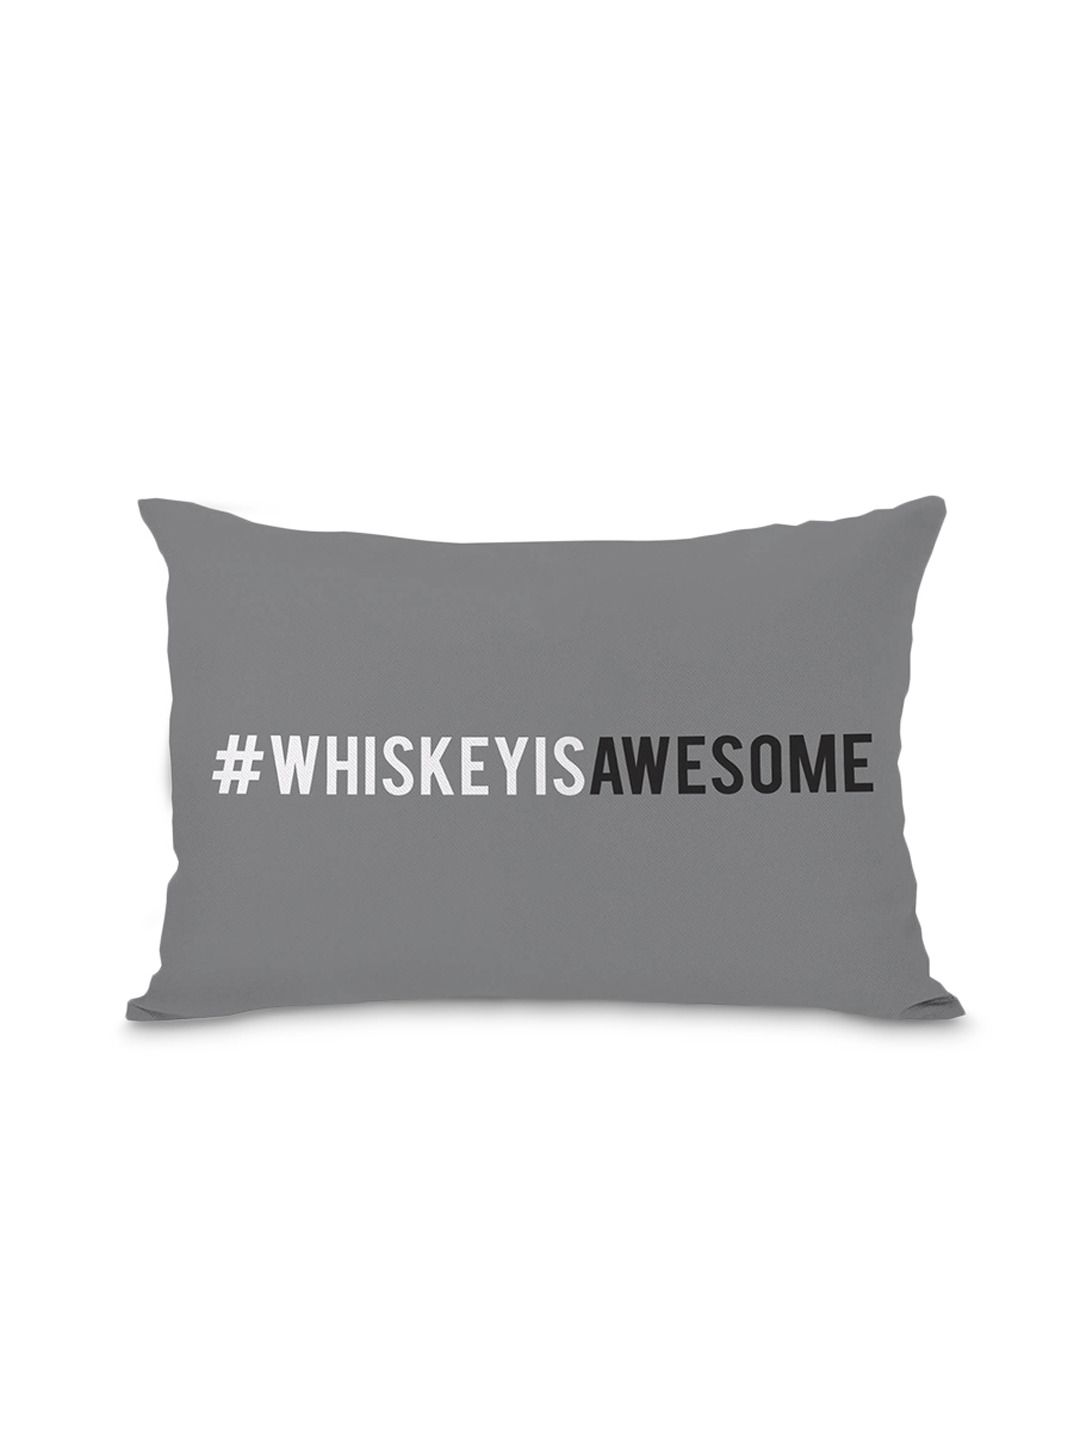 Hashtag Whiskey Is Awesome Whiskey Is Evil Pillow Gilt Home Pillows Bed Pillows Throw Pillows